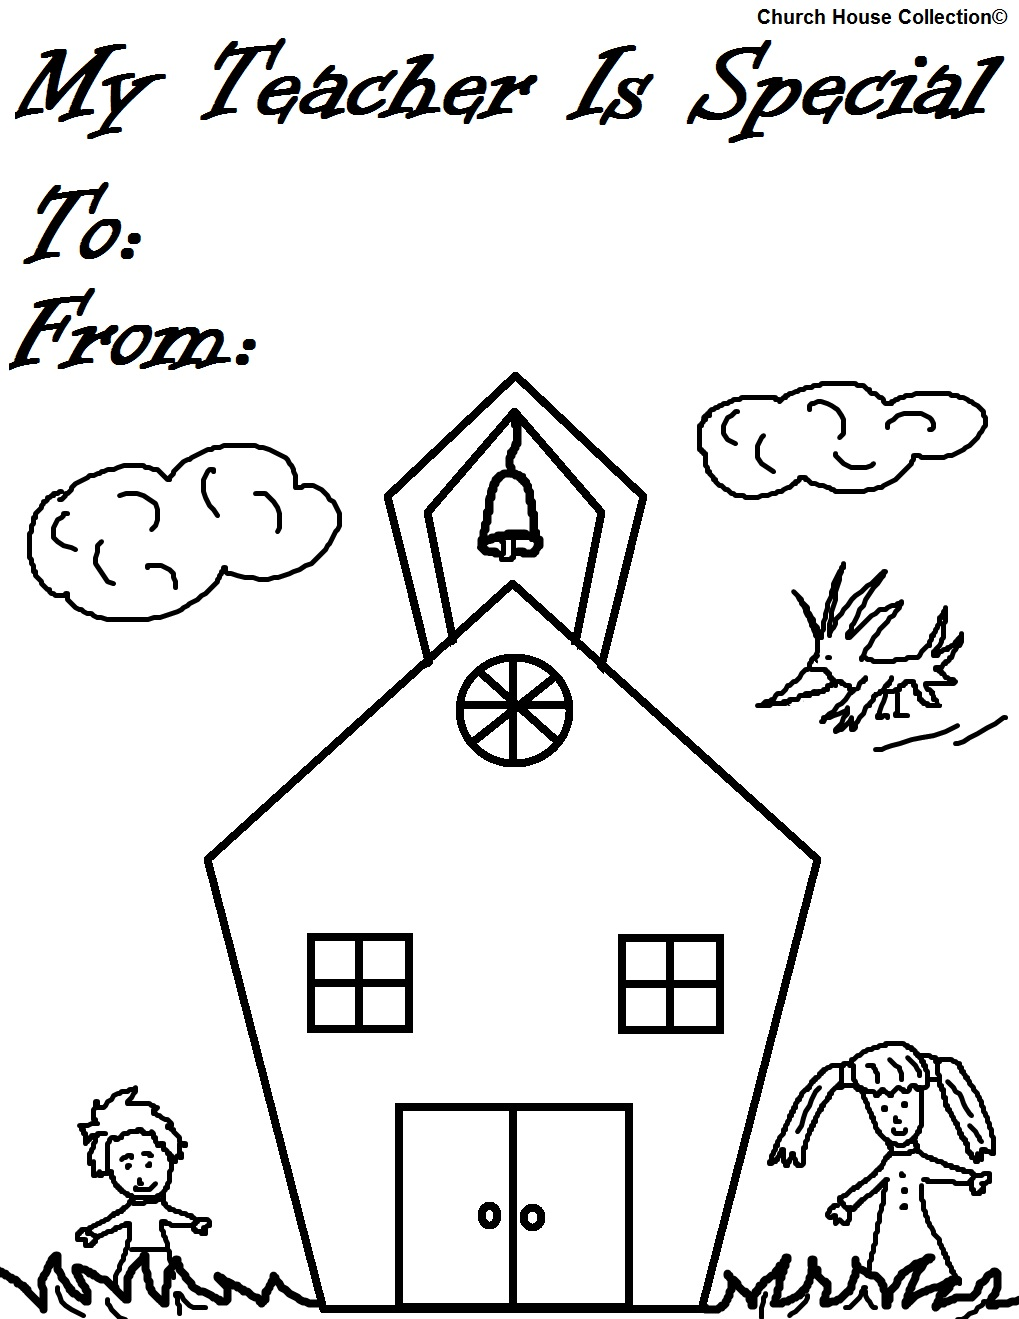 Coloring Pages For Your Teacher : Church house collection my teacher is special